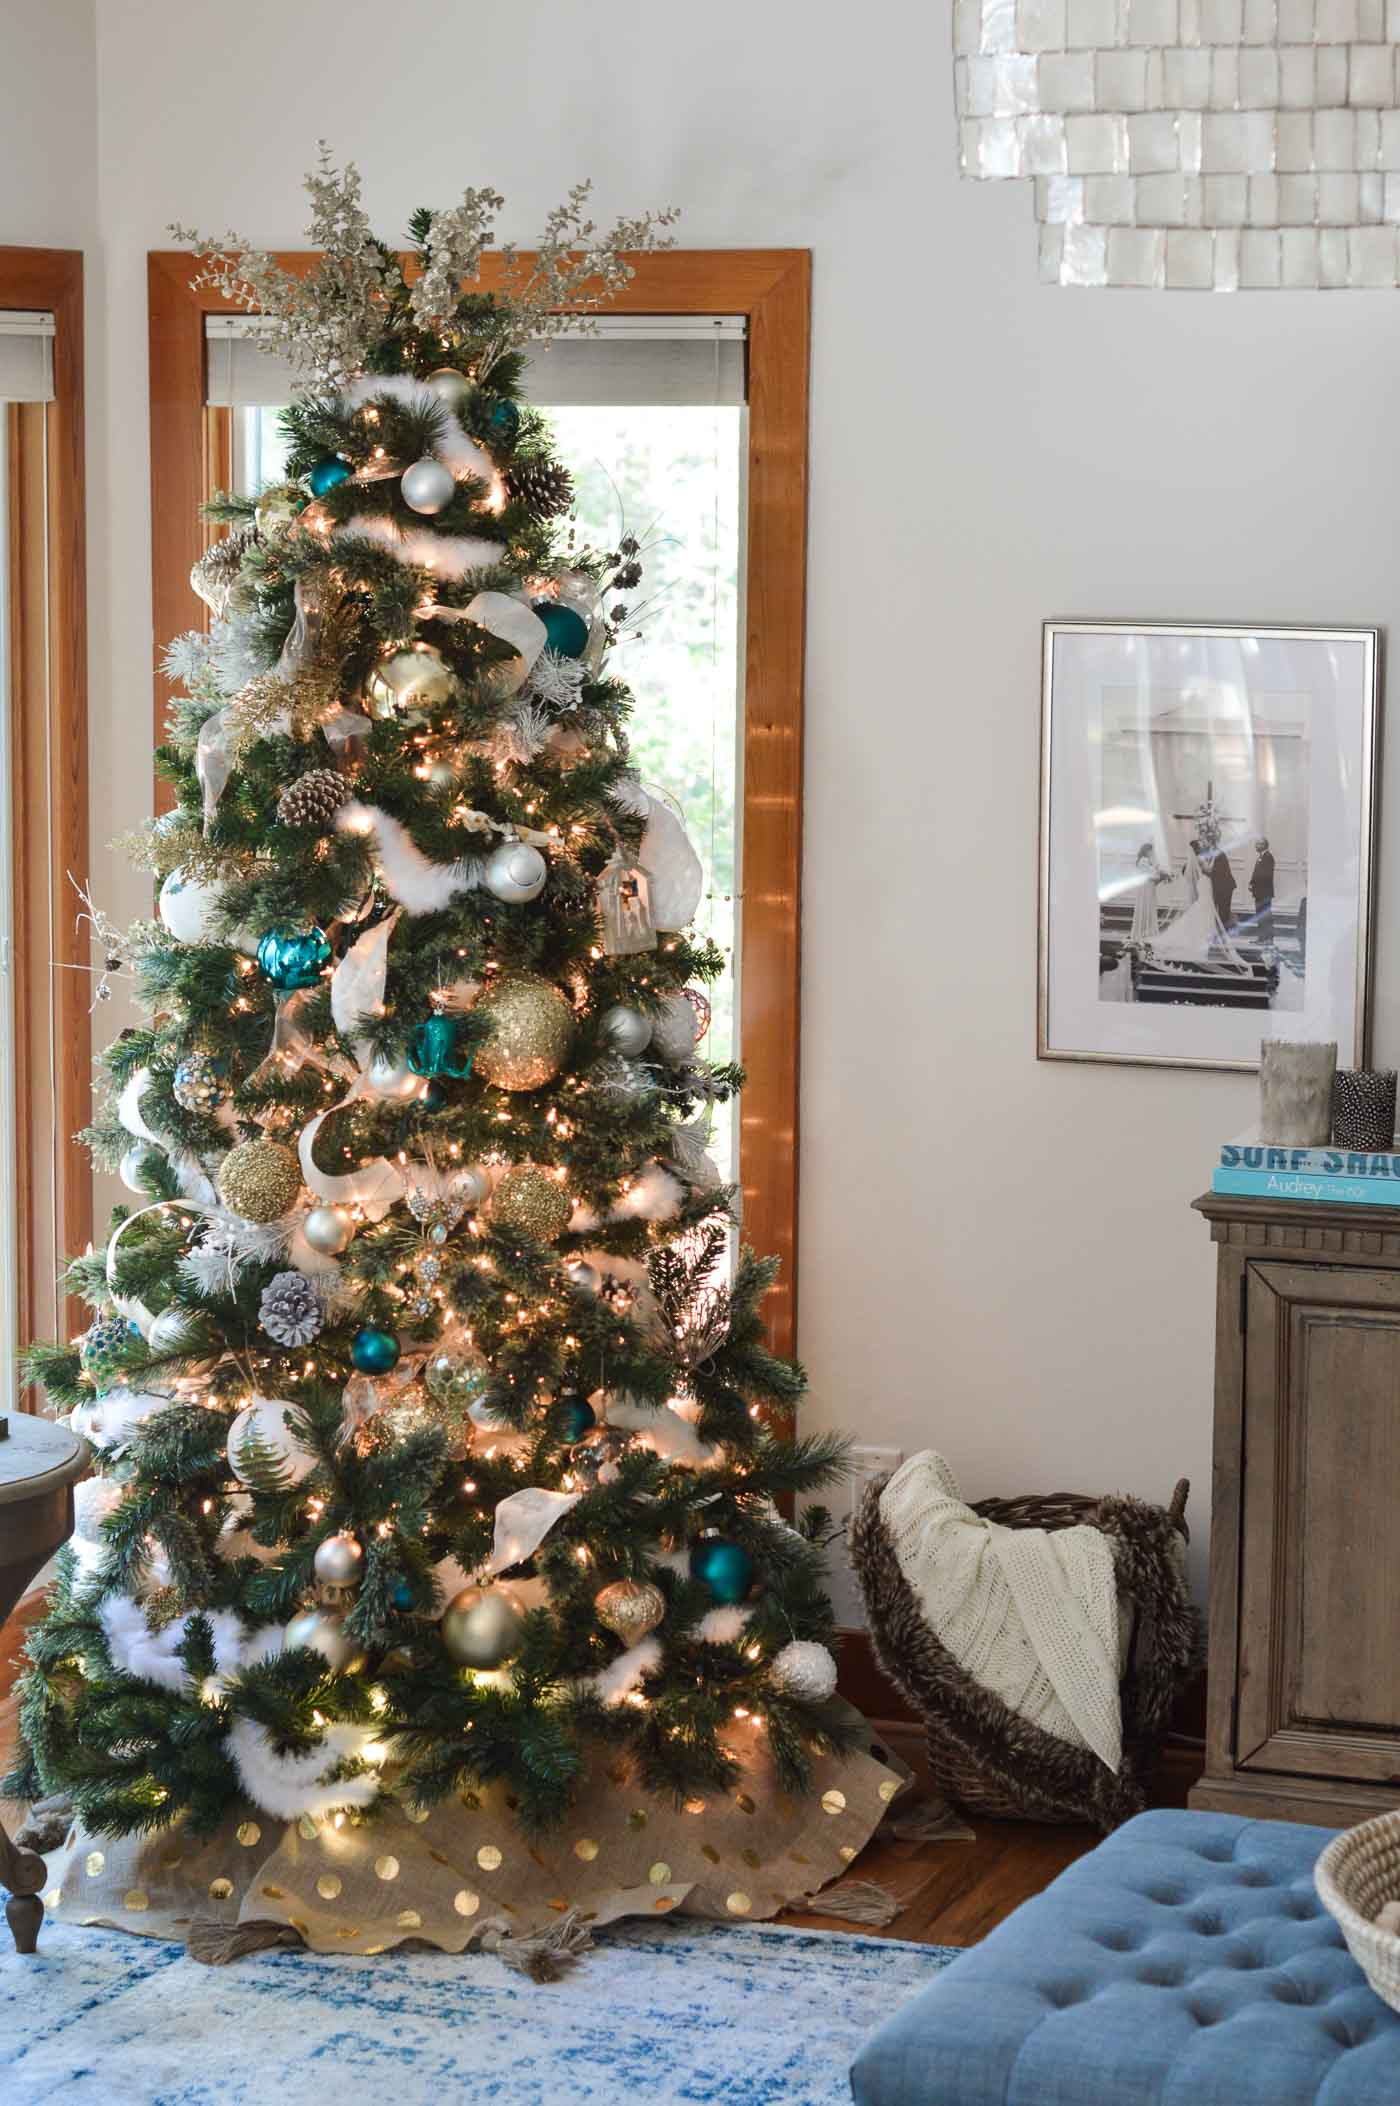 50 Christmas Tree Ideas with Different Themes and Colors